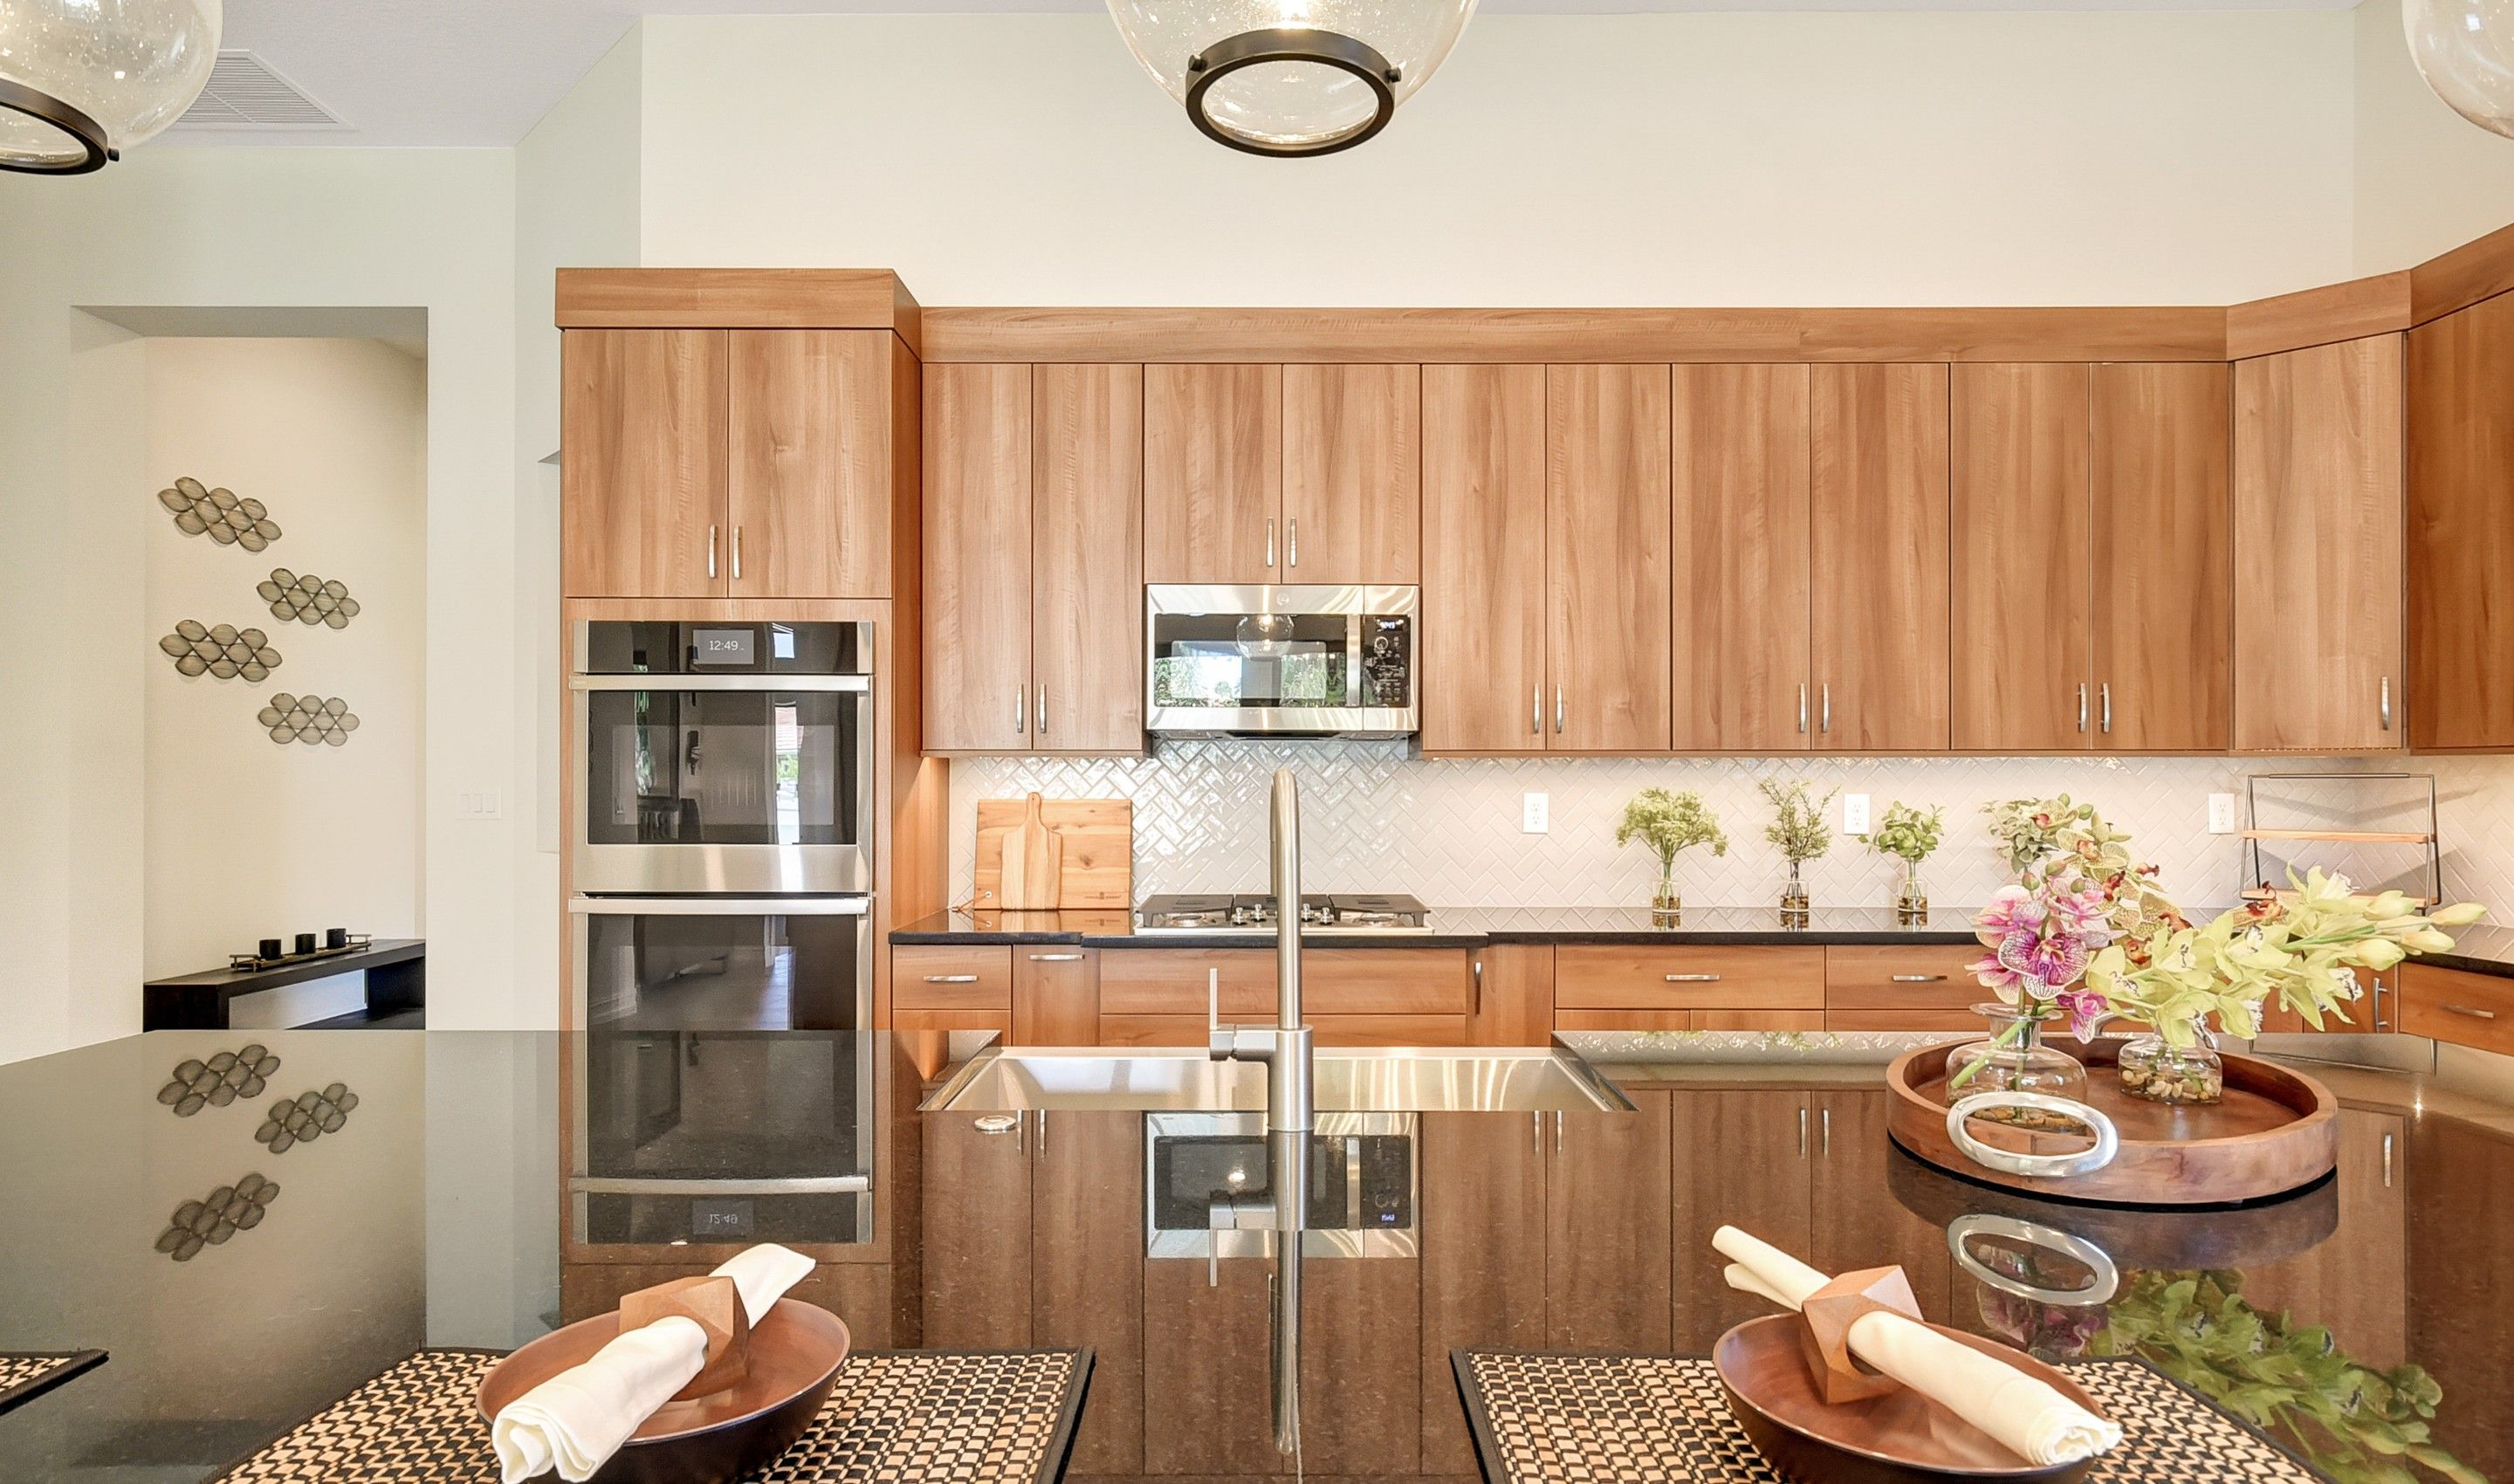 Kitchen featured in the Flora By K. Hovnanian's® Four Seasons in Broward County-Ft. Lauderdale, FL